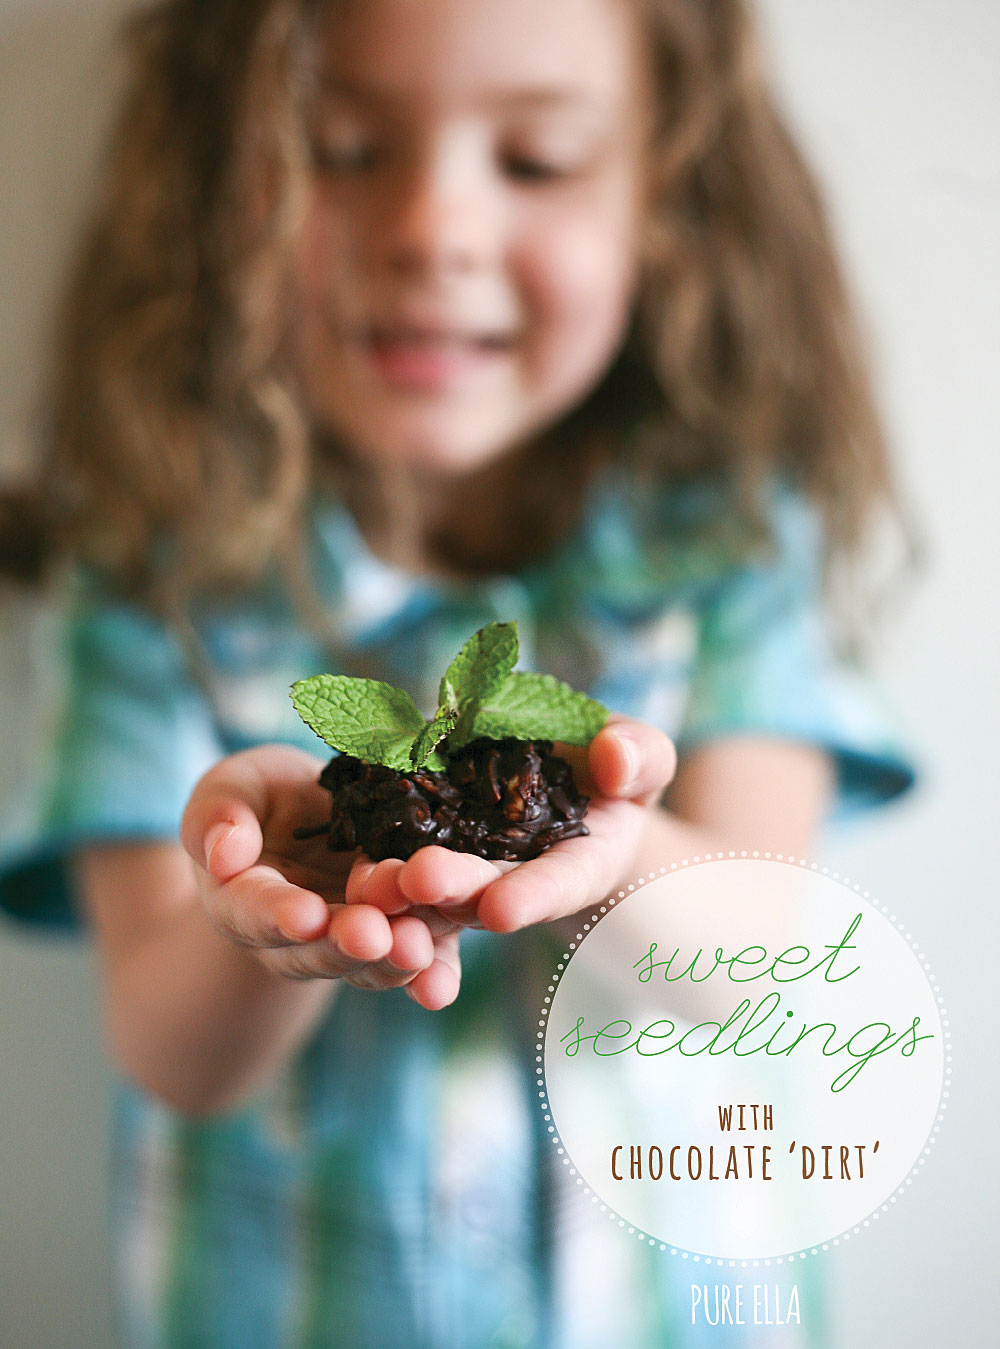 Pure-Ella-Sweet-Seedlings-with-chocolate-dirt